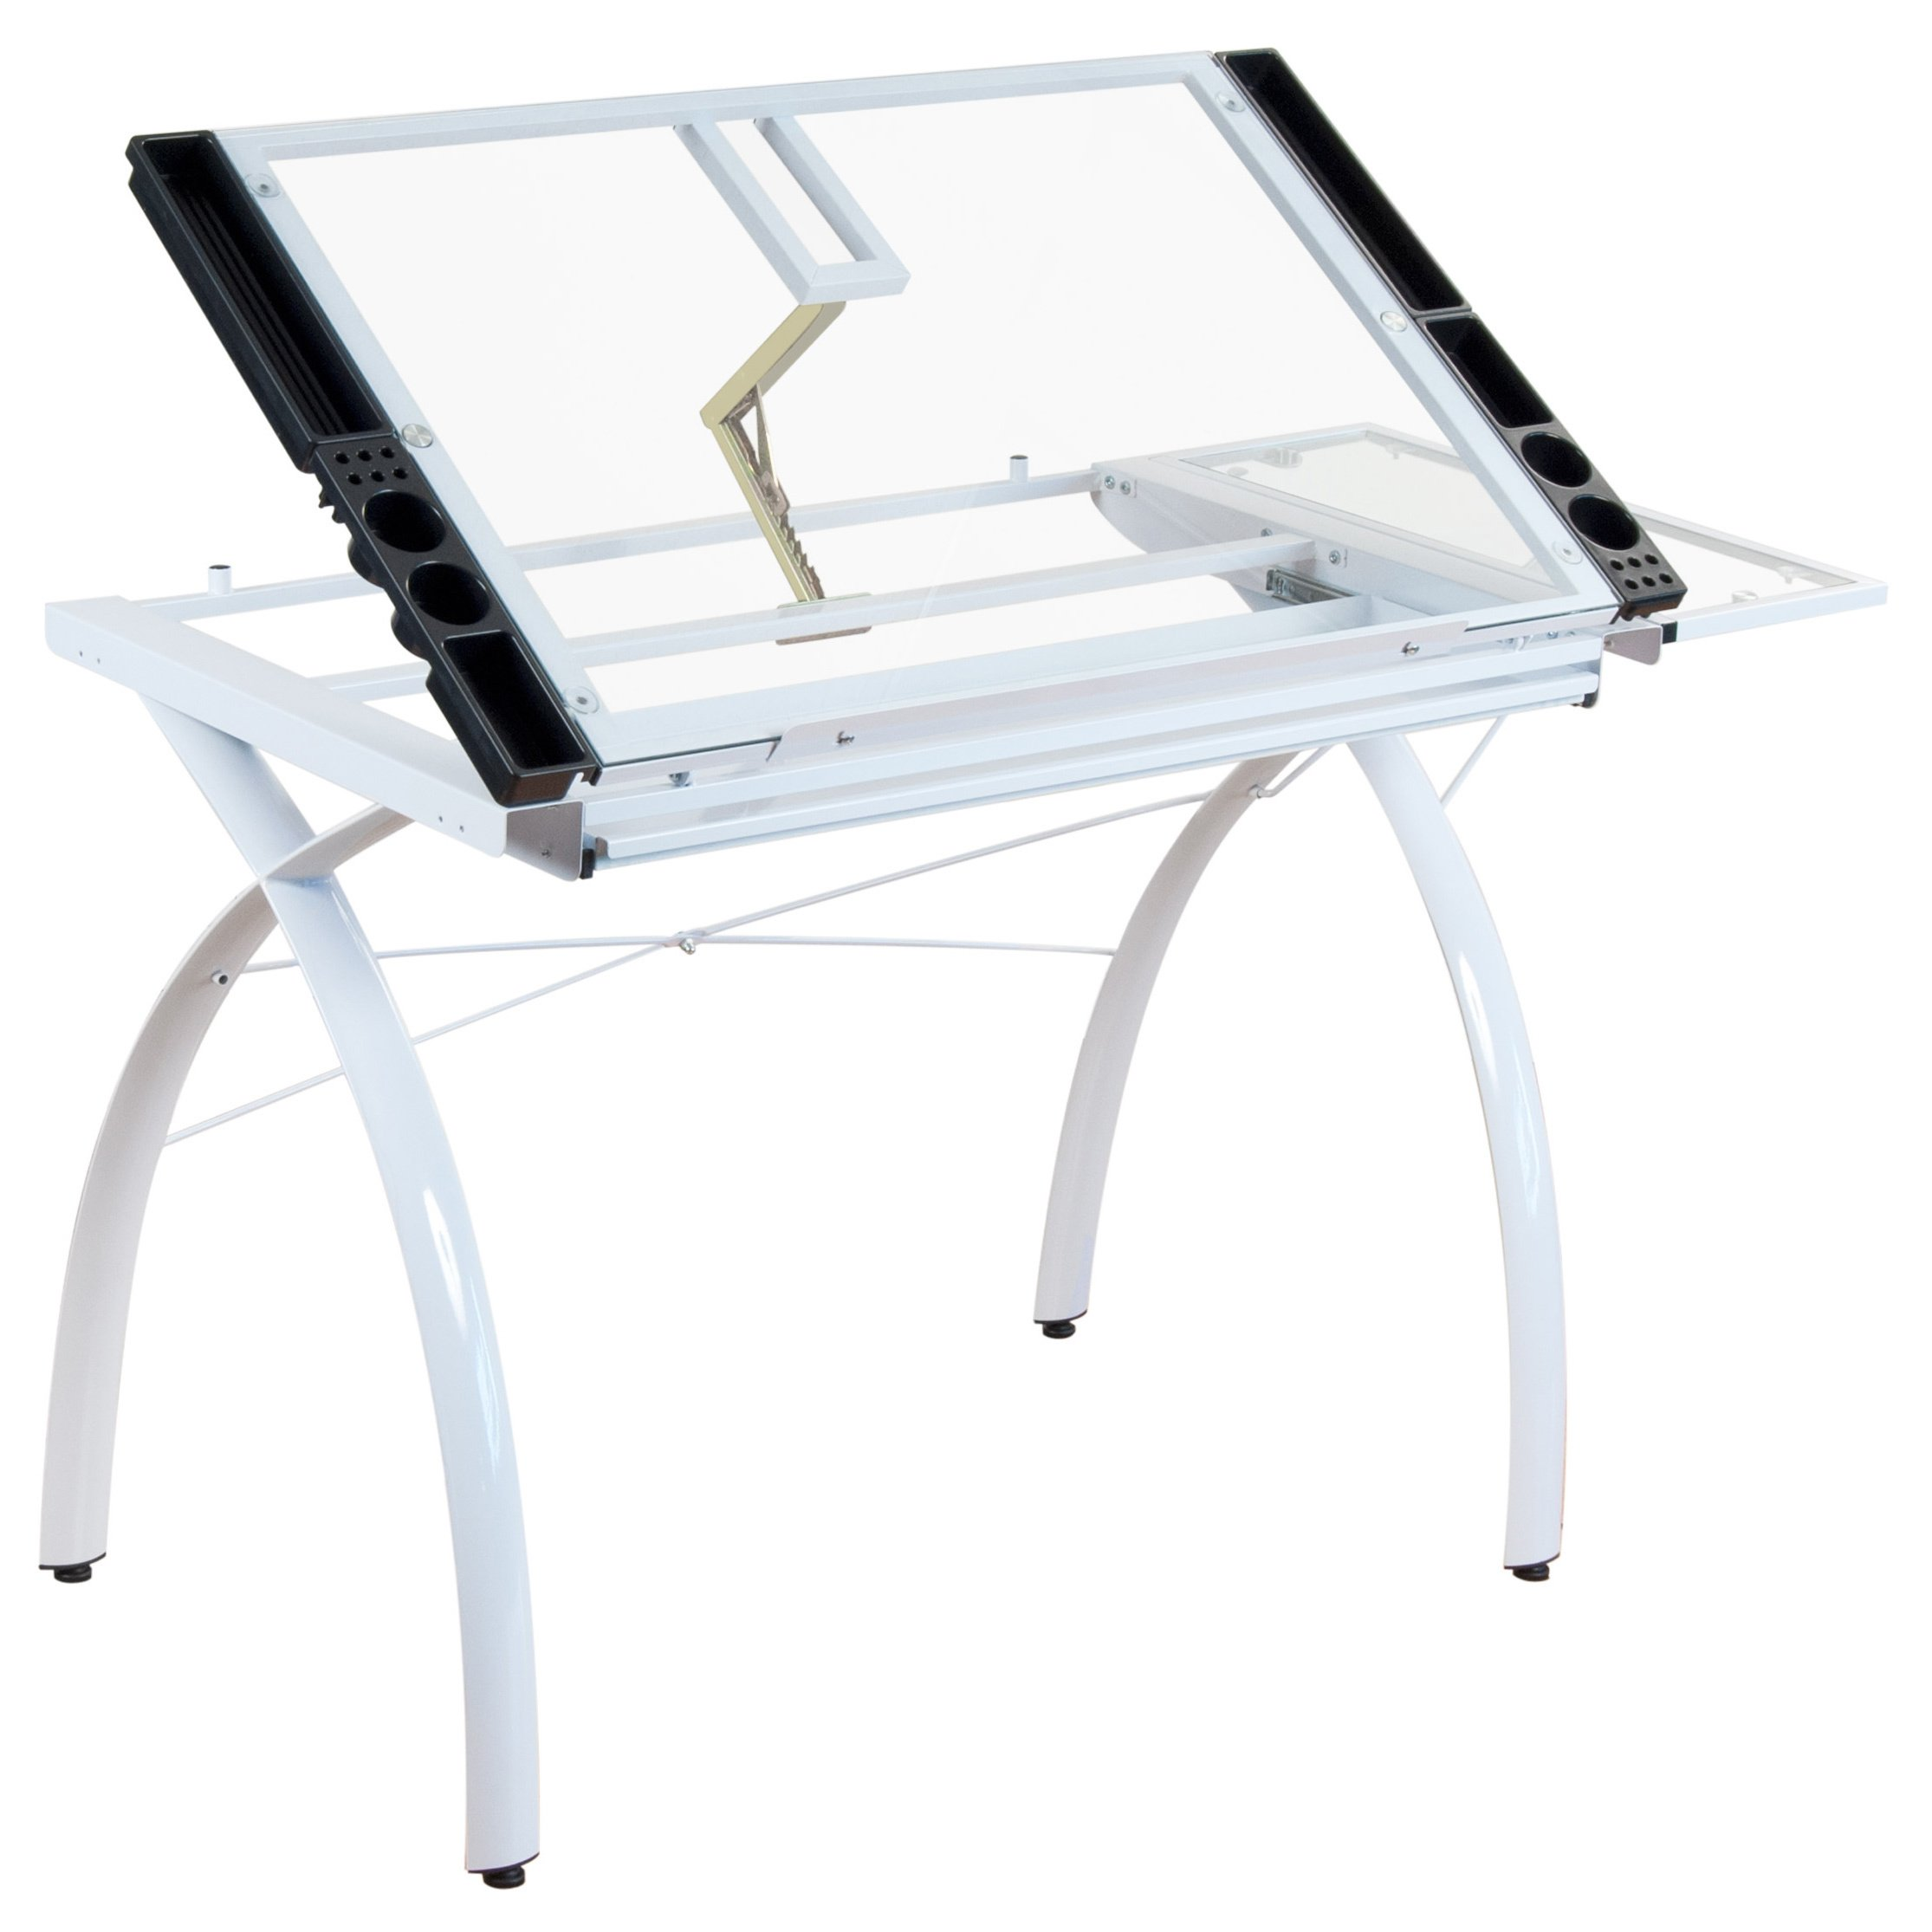 Modern Contemporary Drafting Hobby Craft Station Table with Adjustable Tempered Glass Top with Folding Shelf - Includes Modhaus Living Pen (White) by ModHaus Living (Image #3)